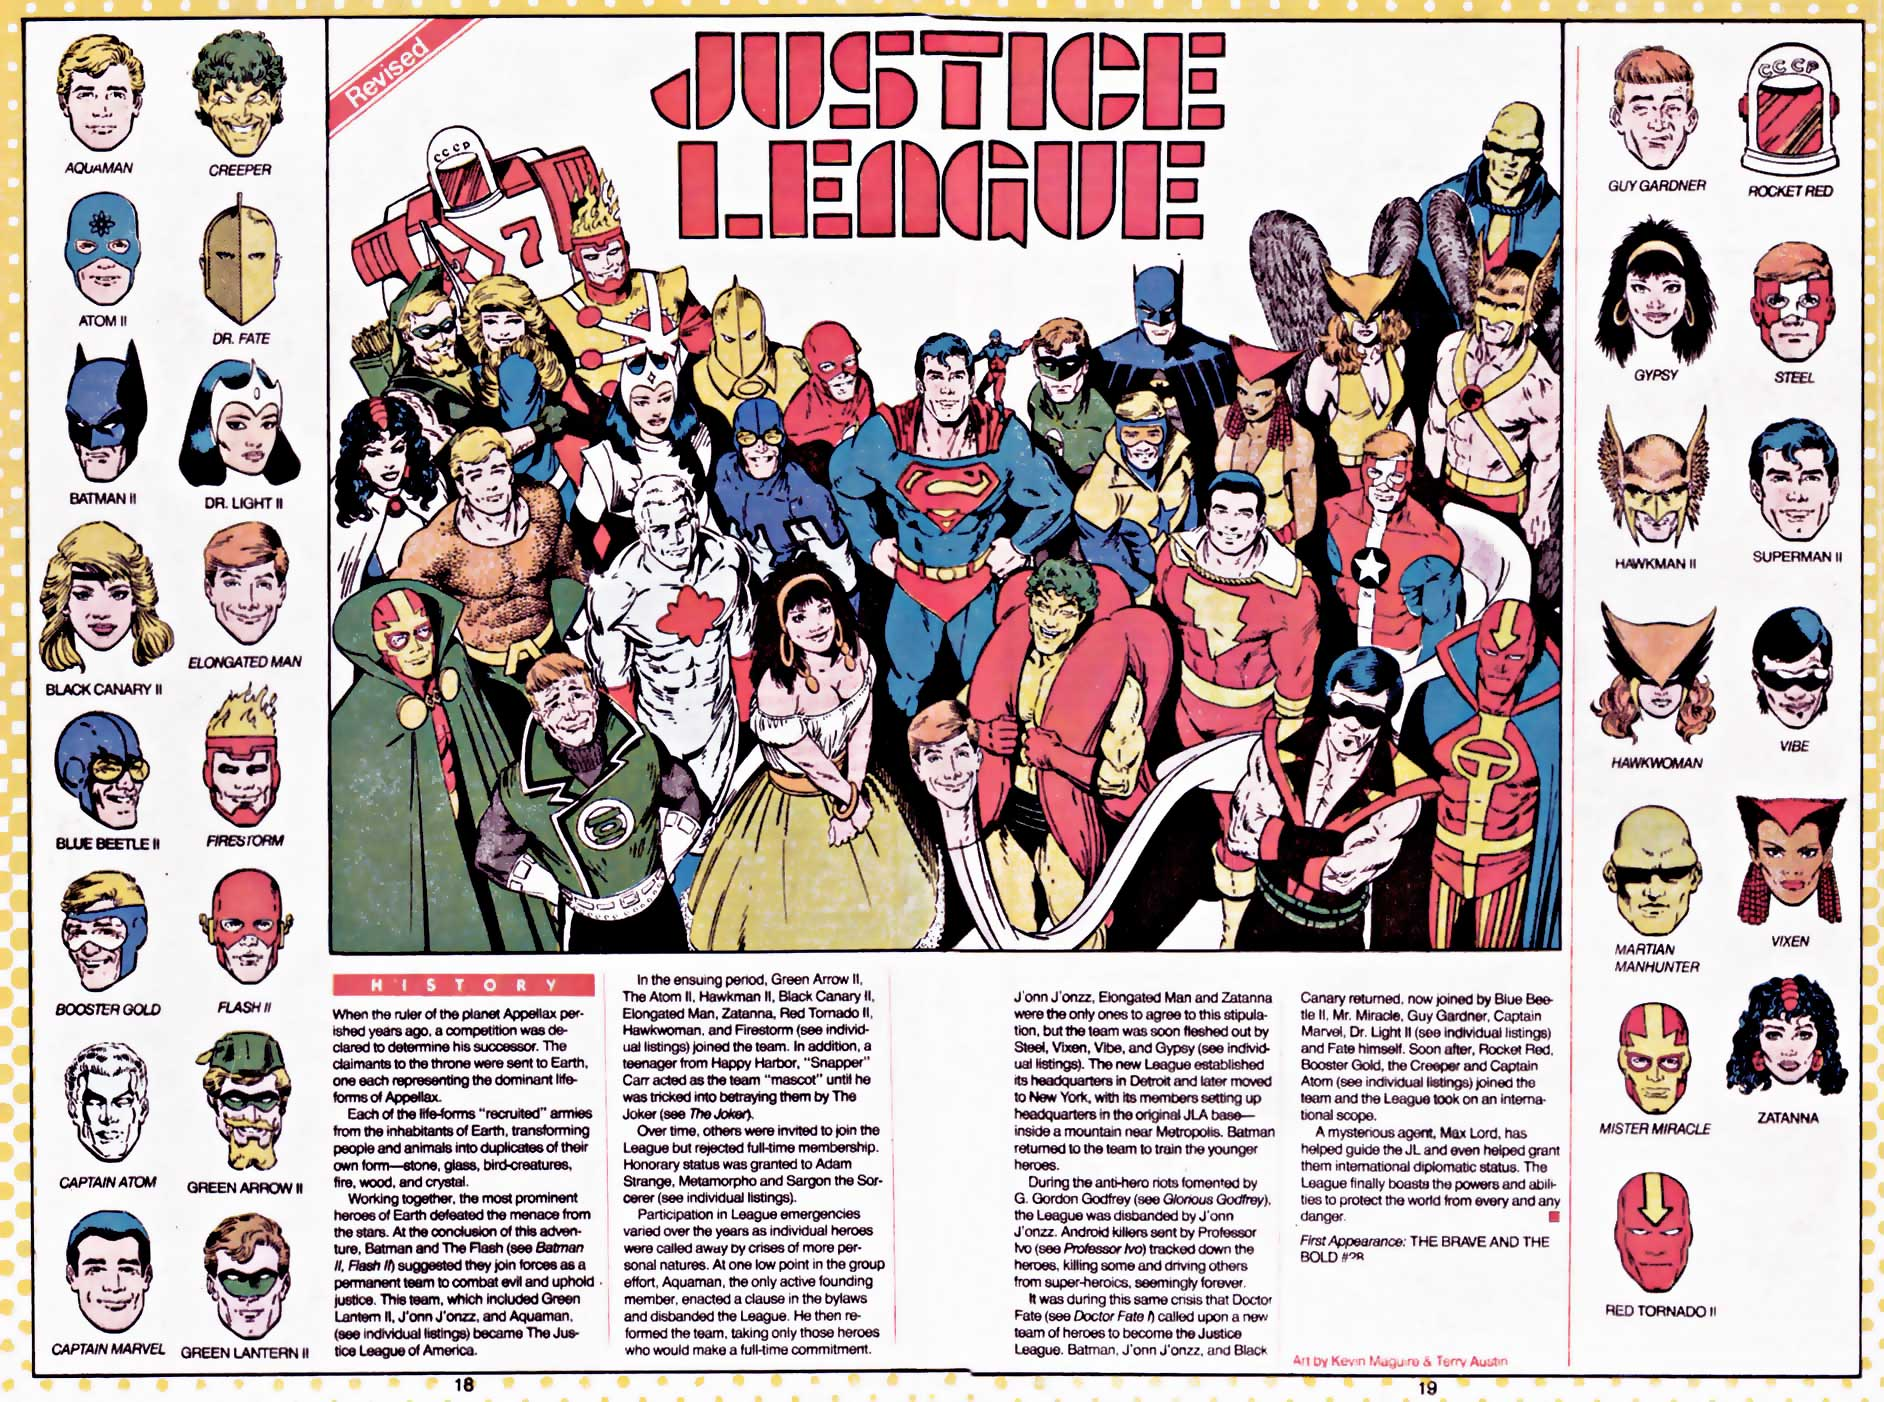 Justice League from Who's Who by Kevin Maguire and Terry Austin